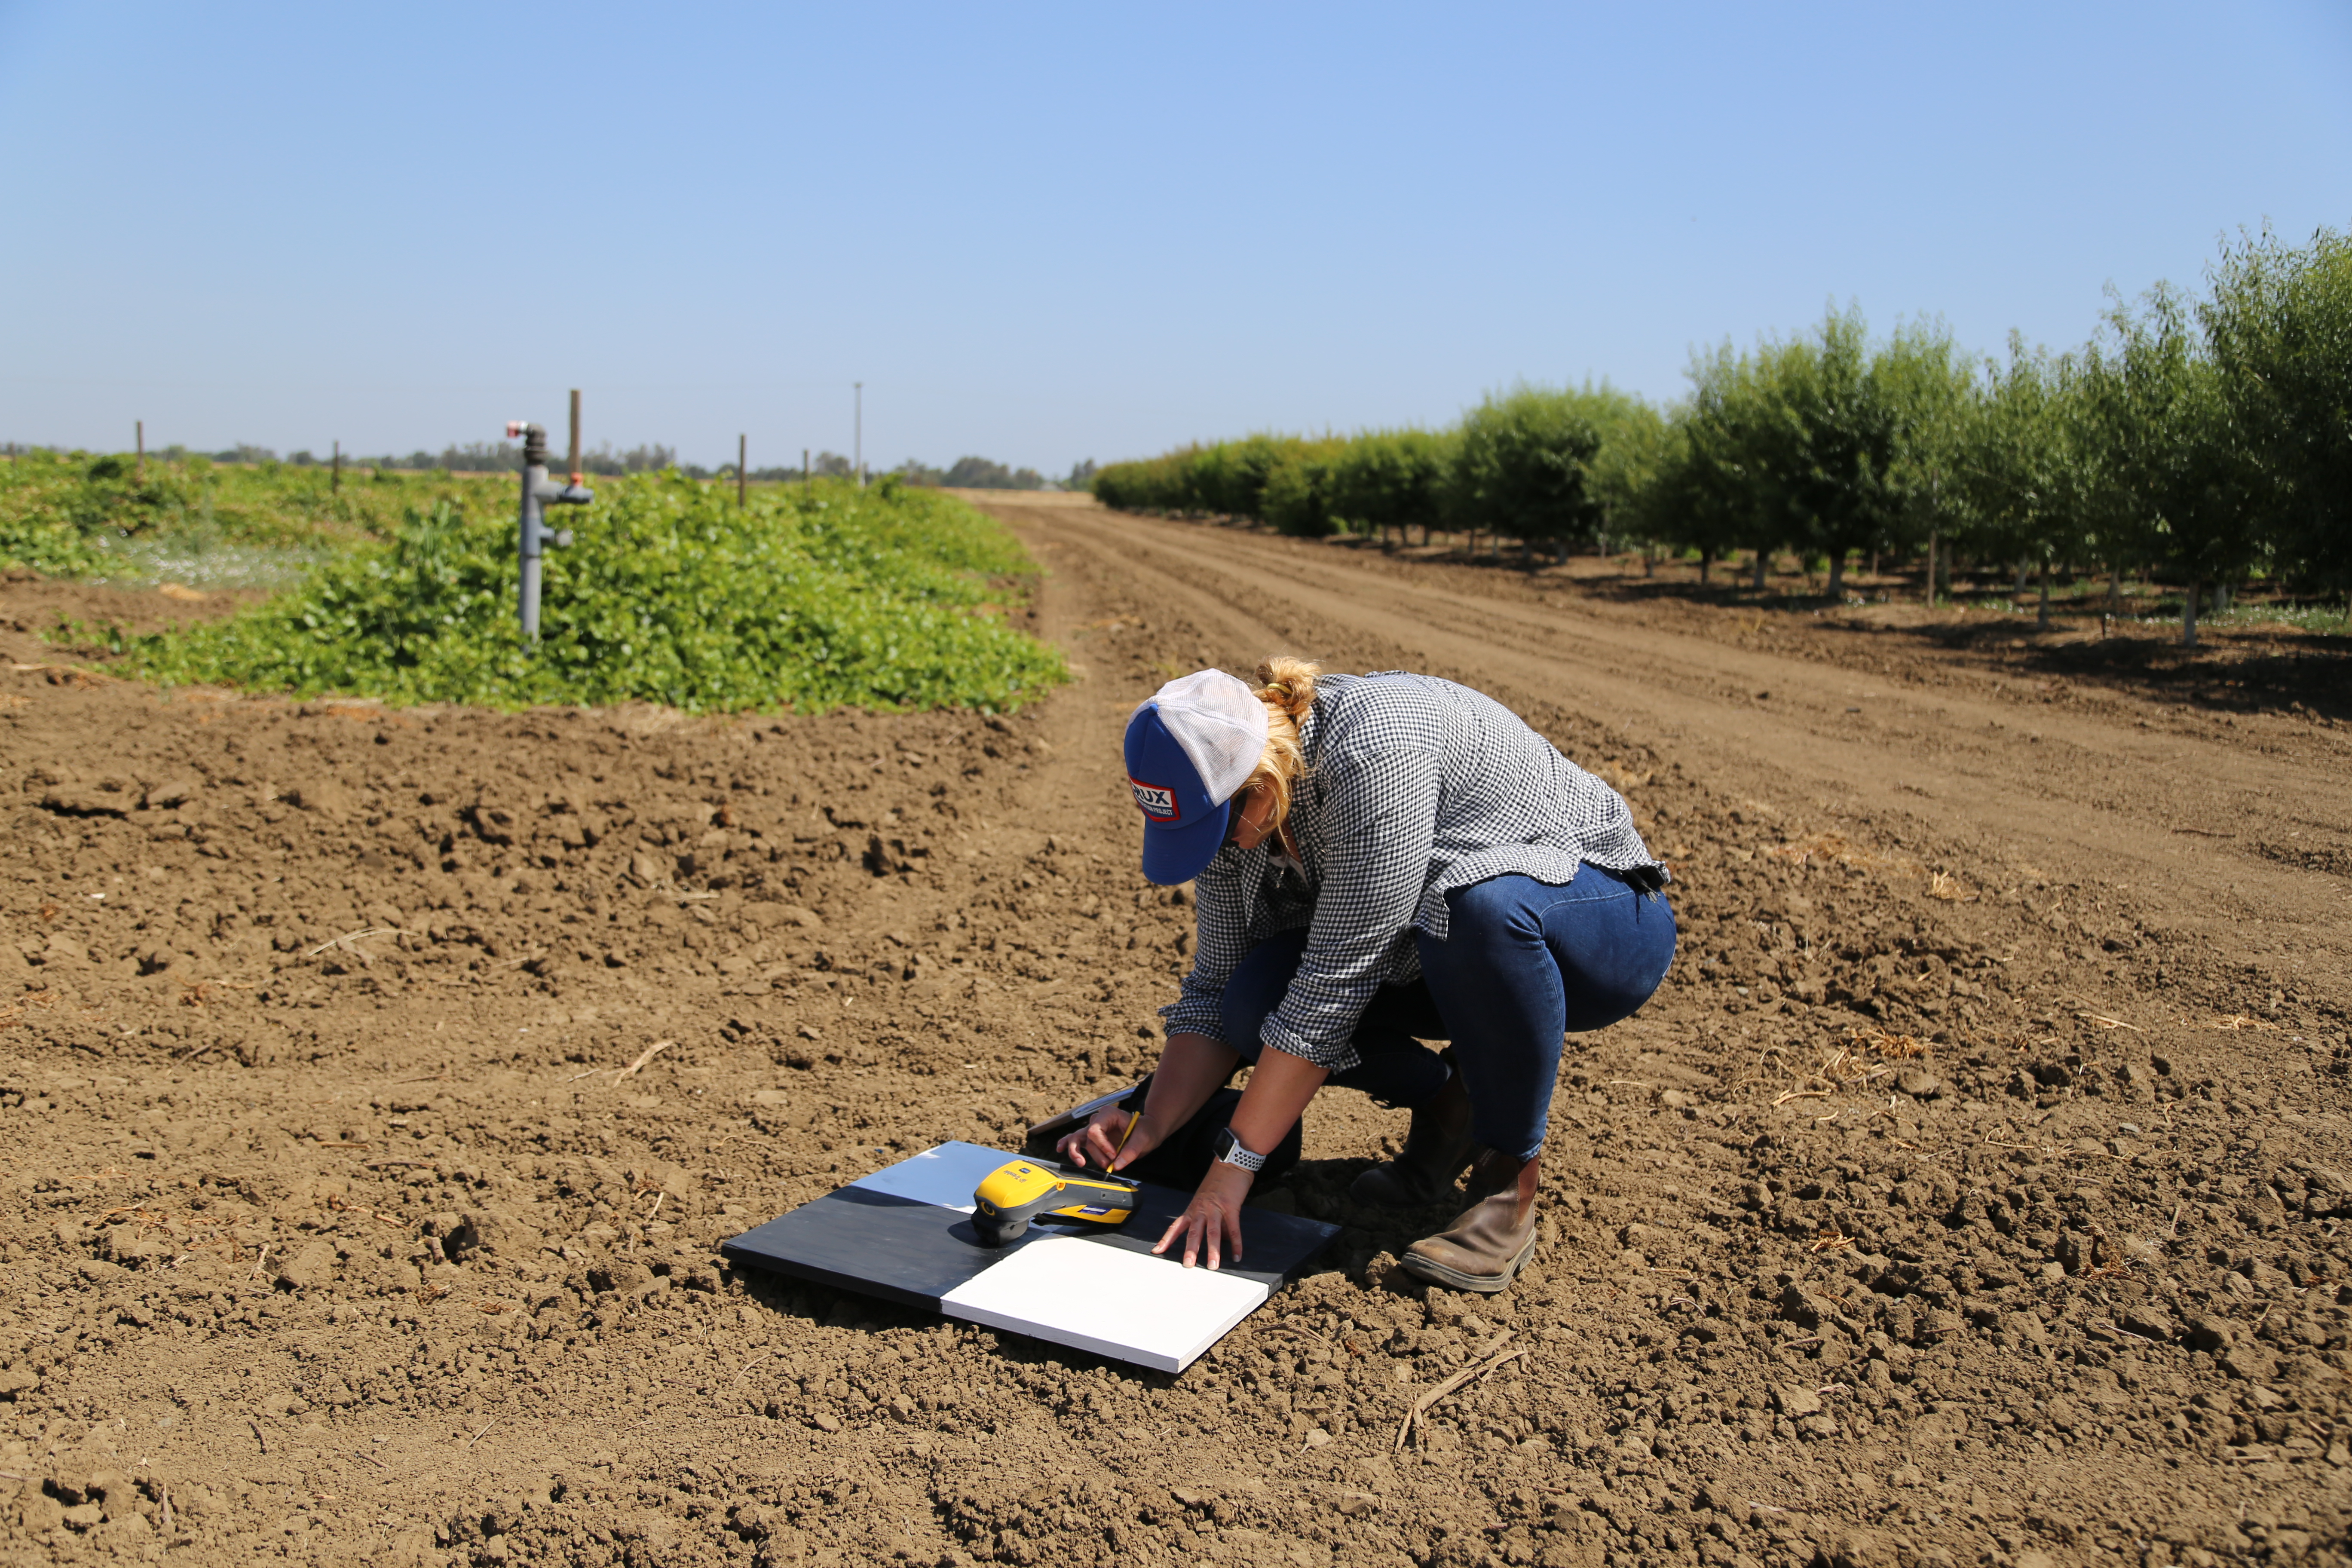 Kelly Collecting GPS locations of ground control targets for drone surveys of agricultural fields